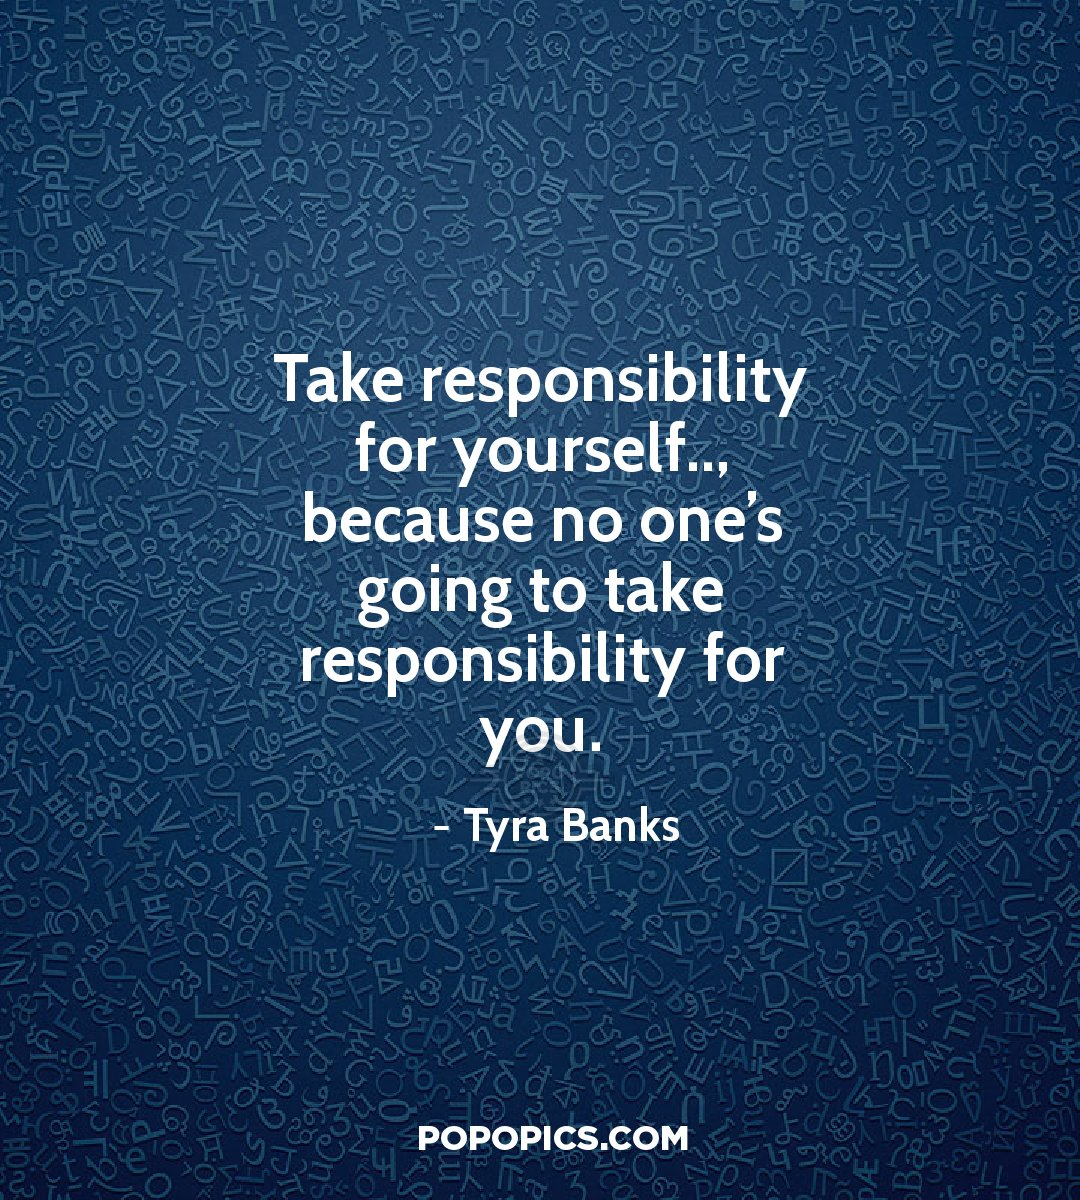 Tyra Banks Quotes: Take Responsibility For Yourself.., Because No...